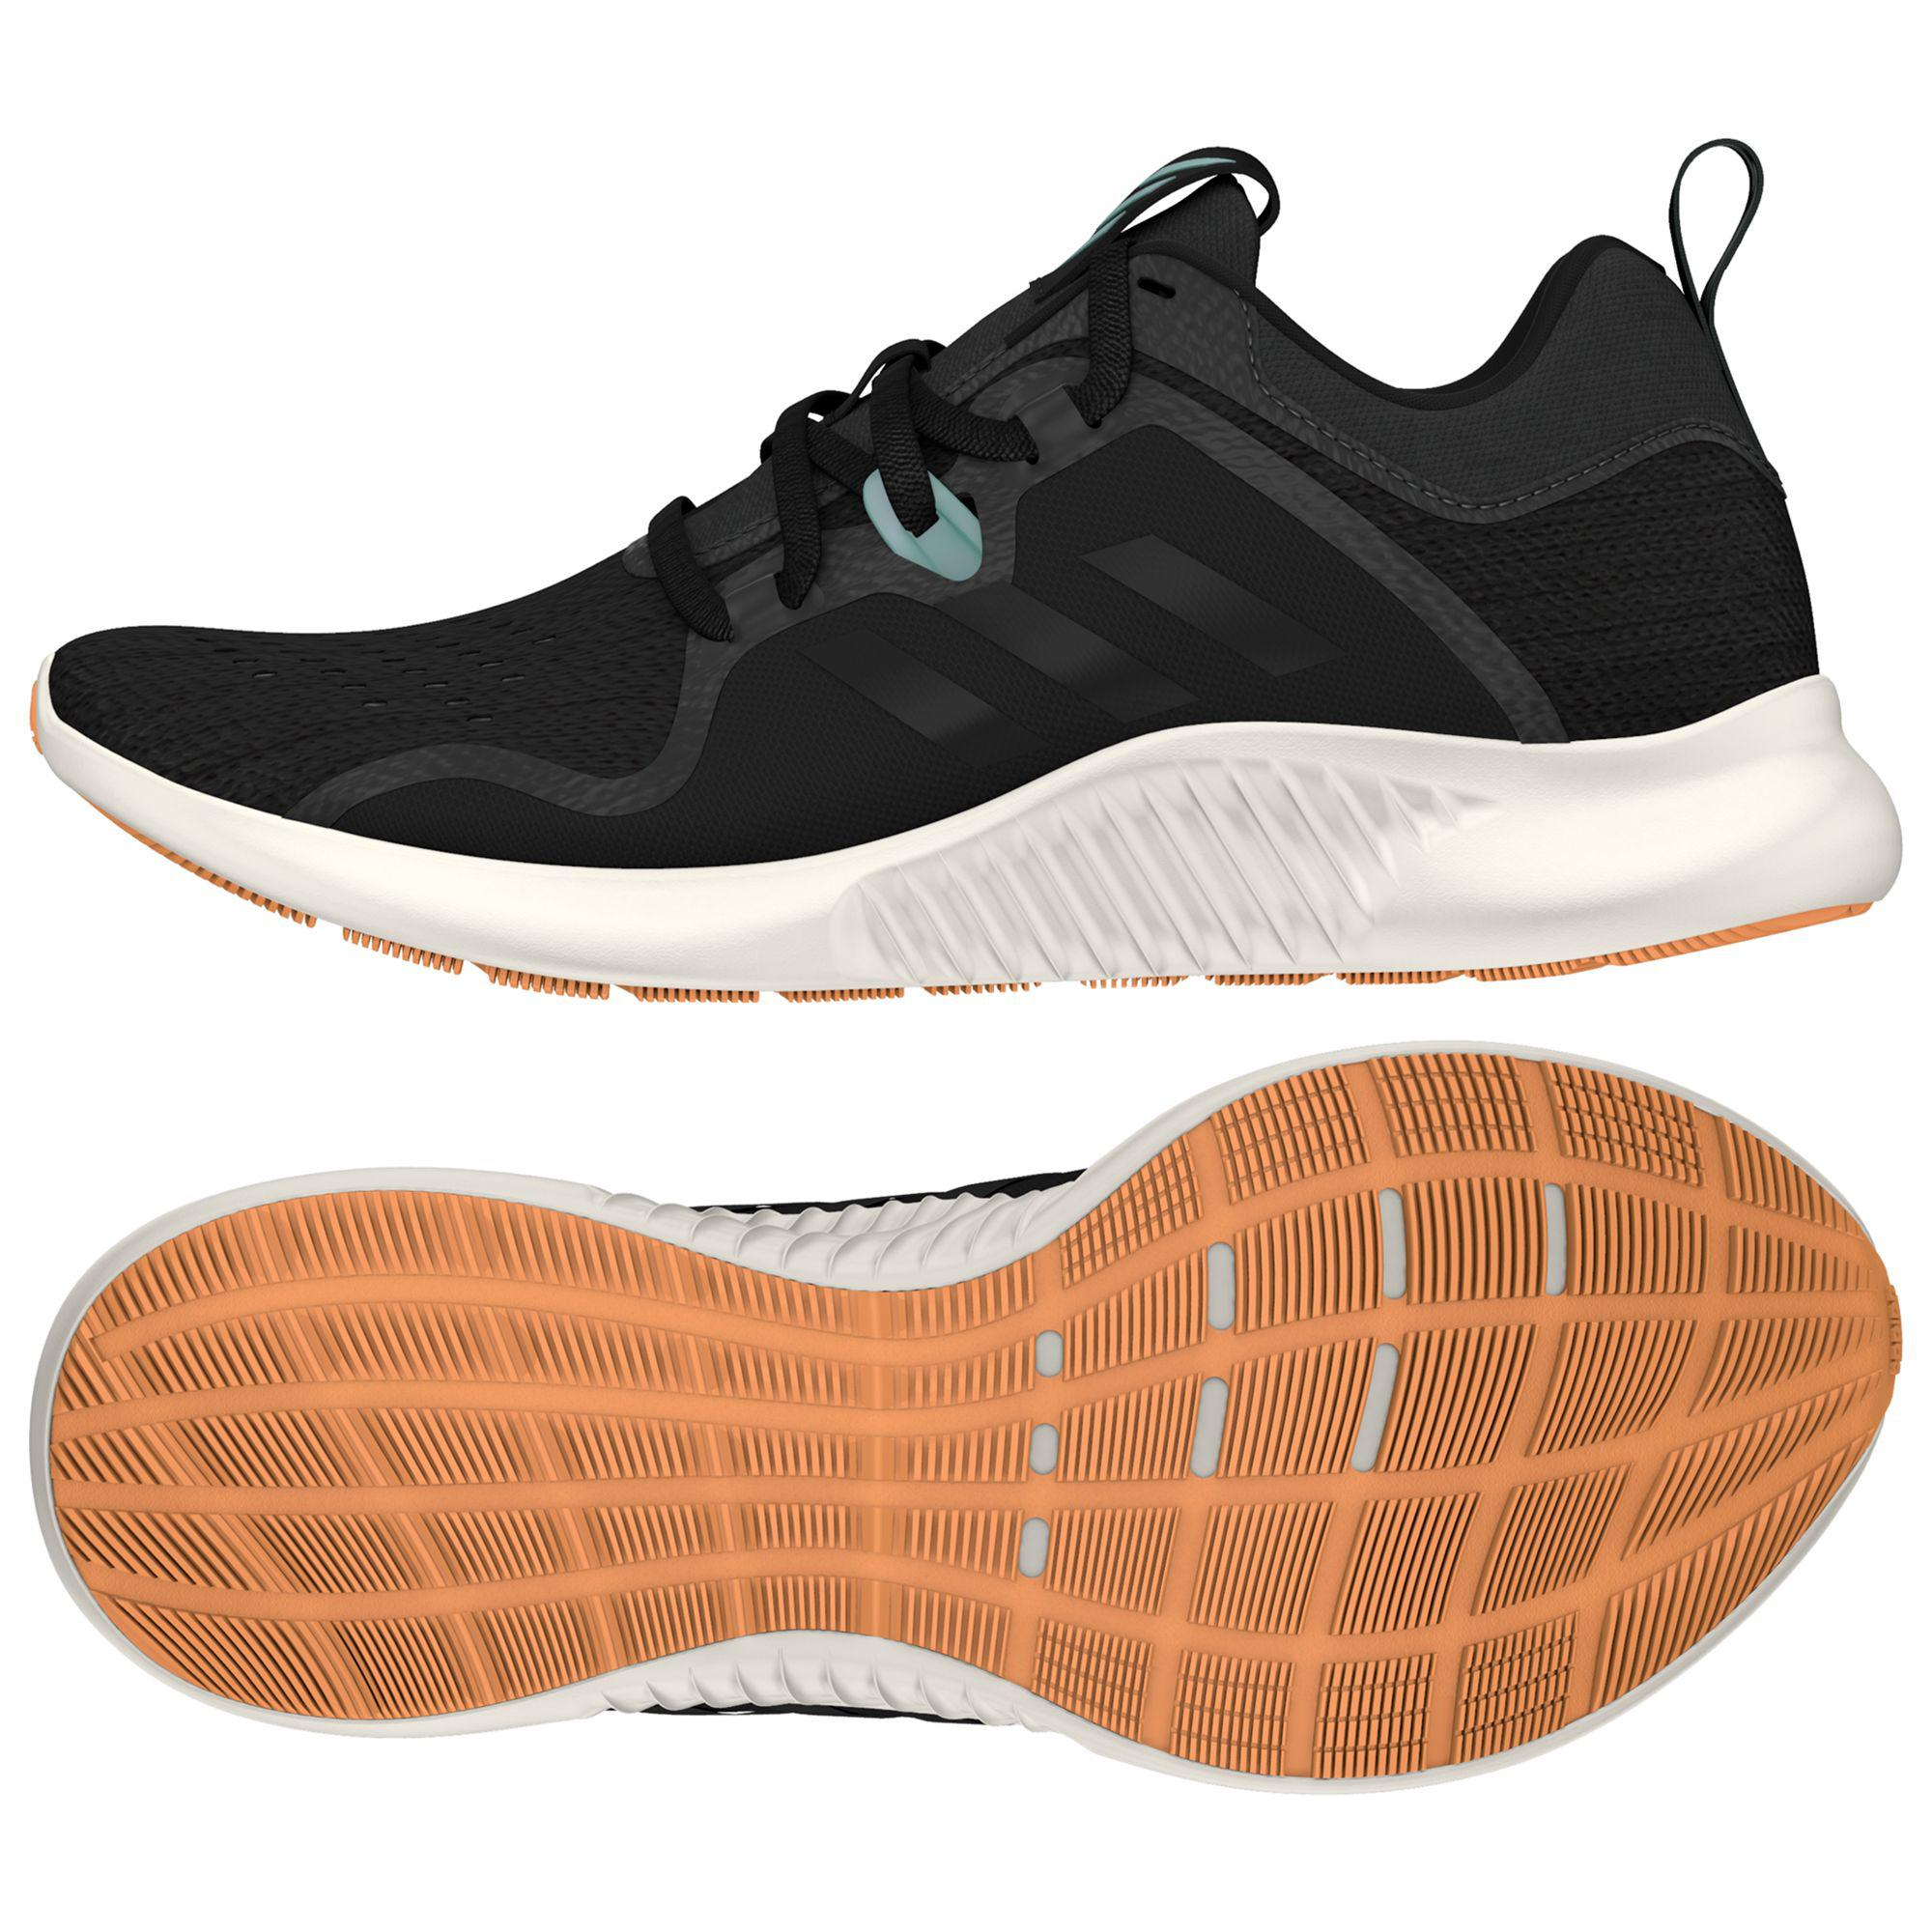 a5add994623cb adidas Edge Bounce Women s Running Shoes in Black - Lyst